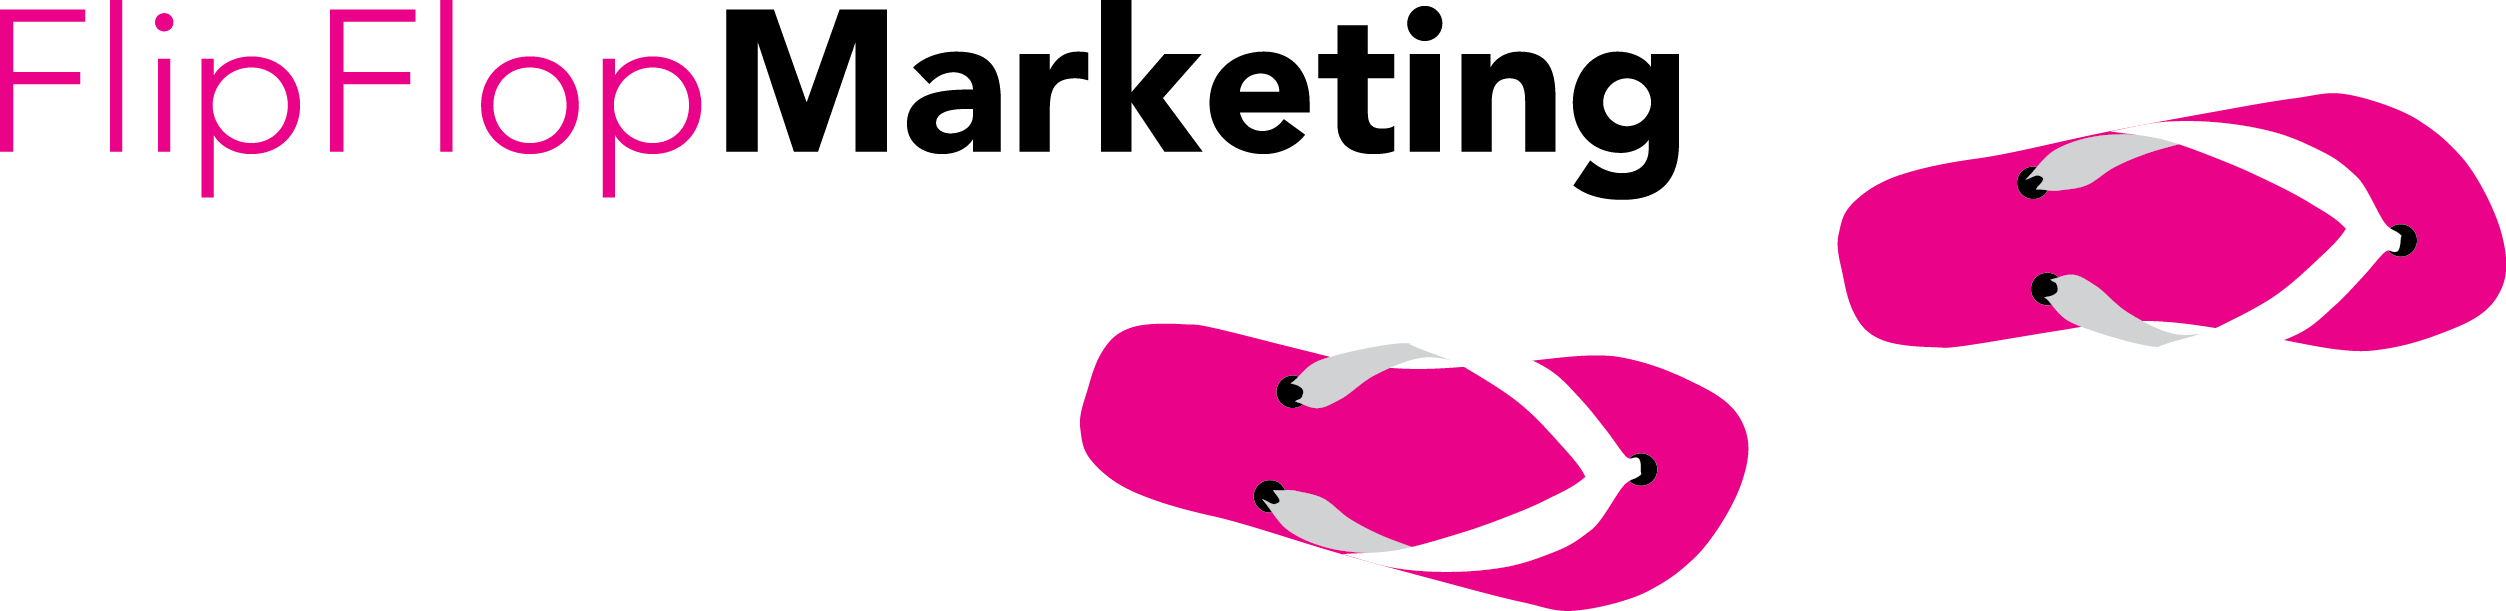 marketing flip flop The flip flop ceo has 465 ratings and 47 reviews lauri said: this was a great book if you want to learn more about the network marketing industry - even.